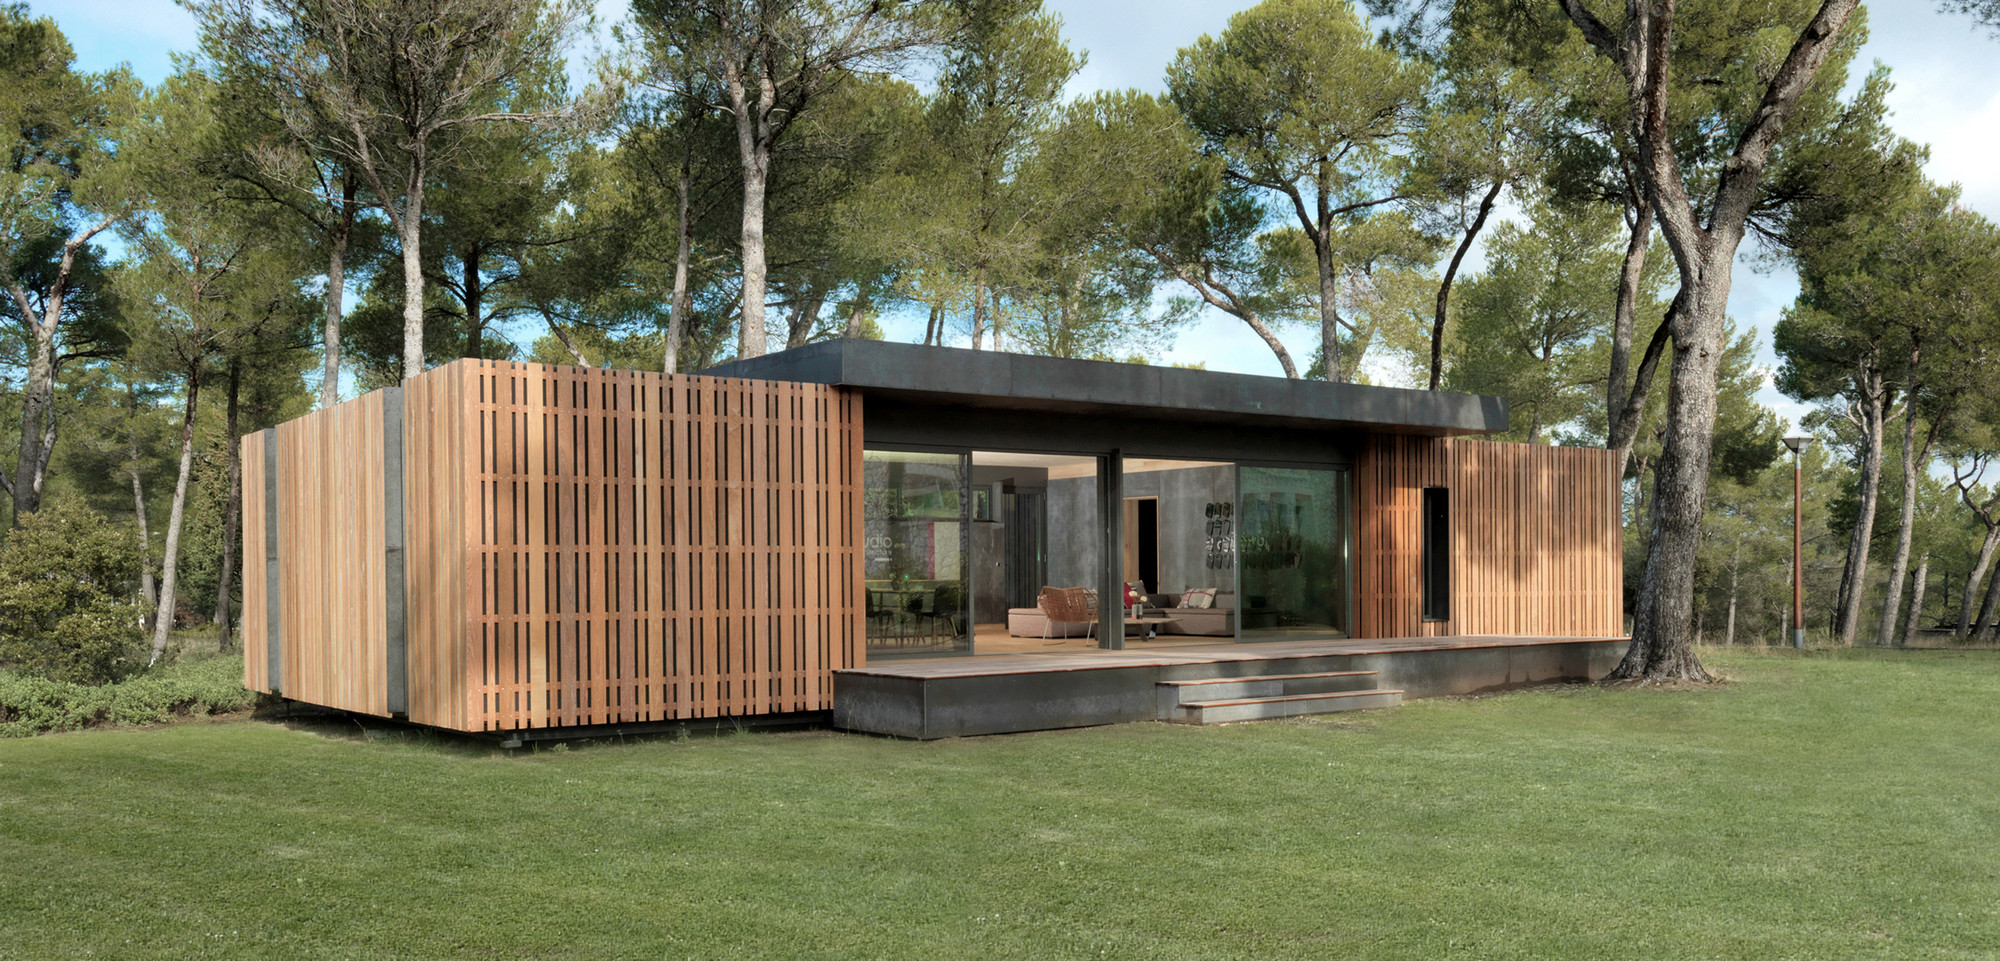 Amazing Sustainable Home Design Ideas: The Pop-Up House by Multipod ...